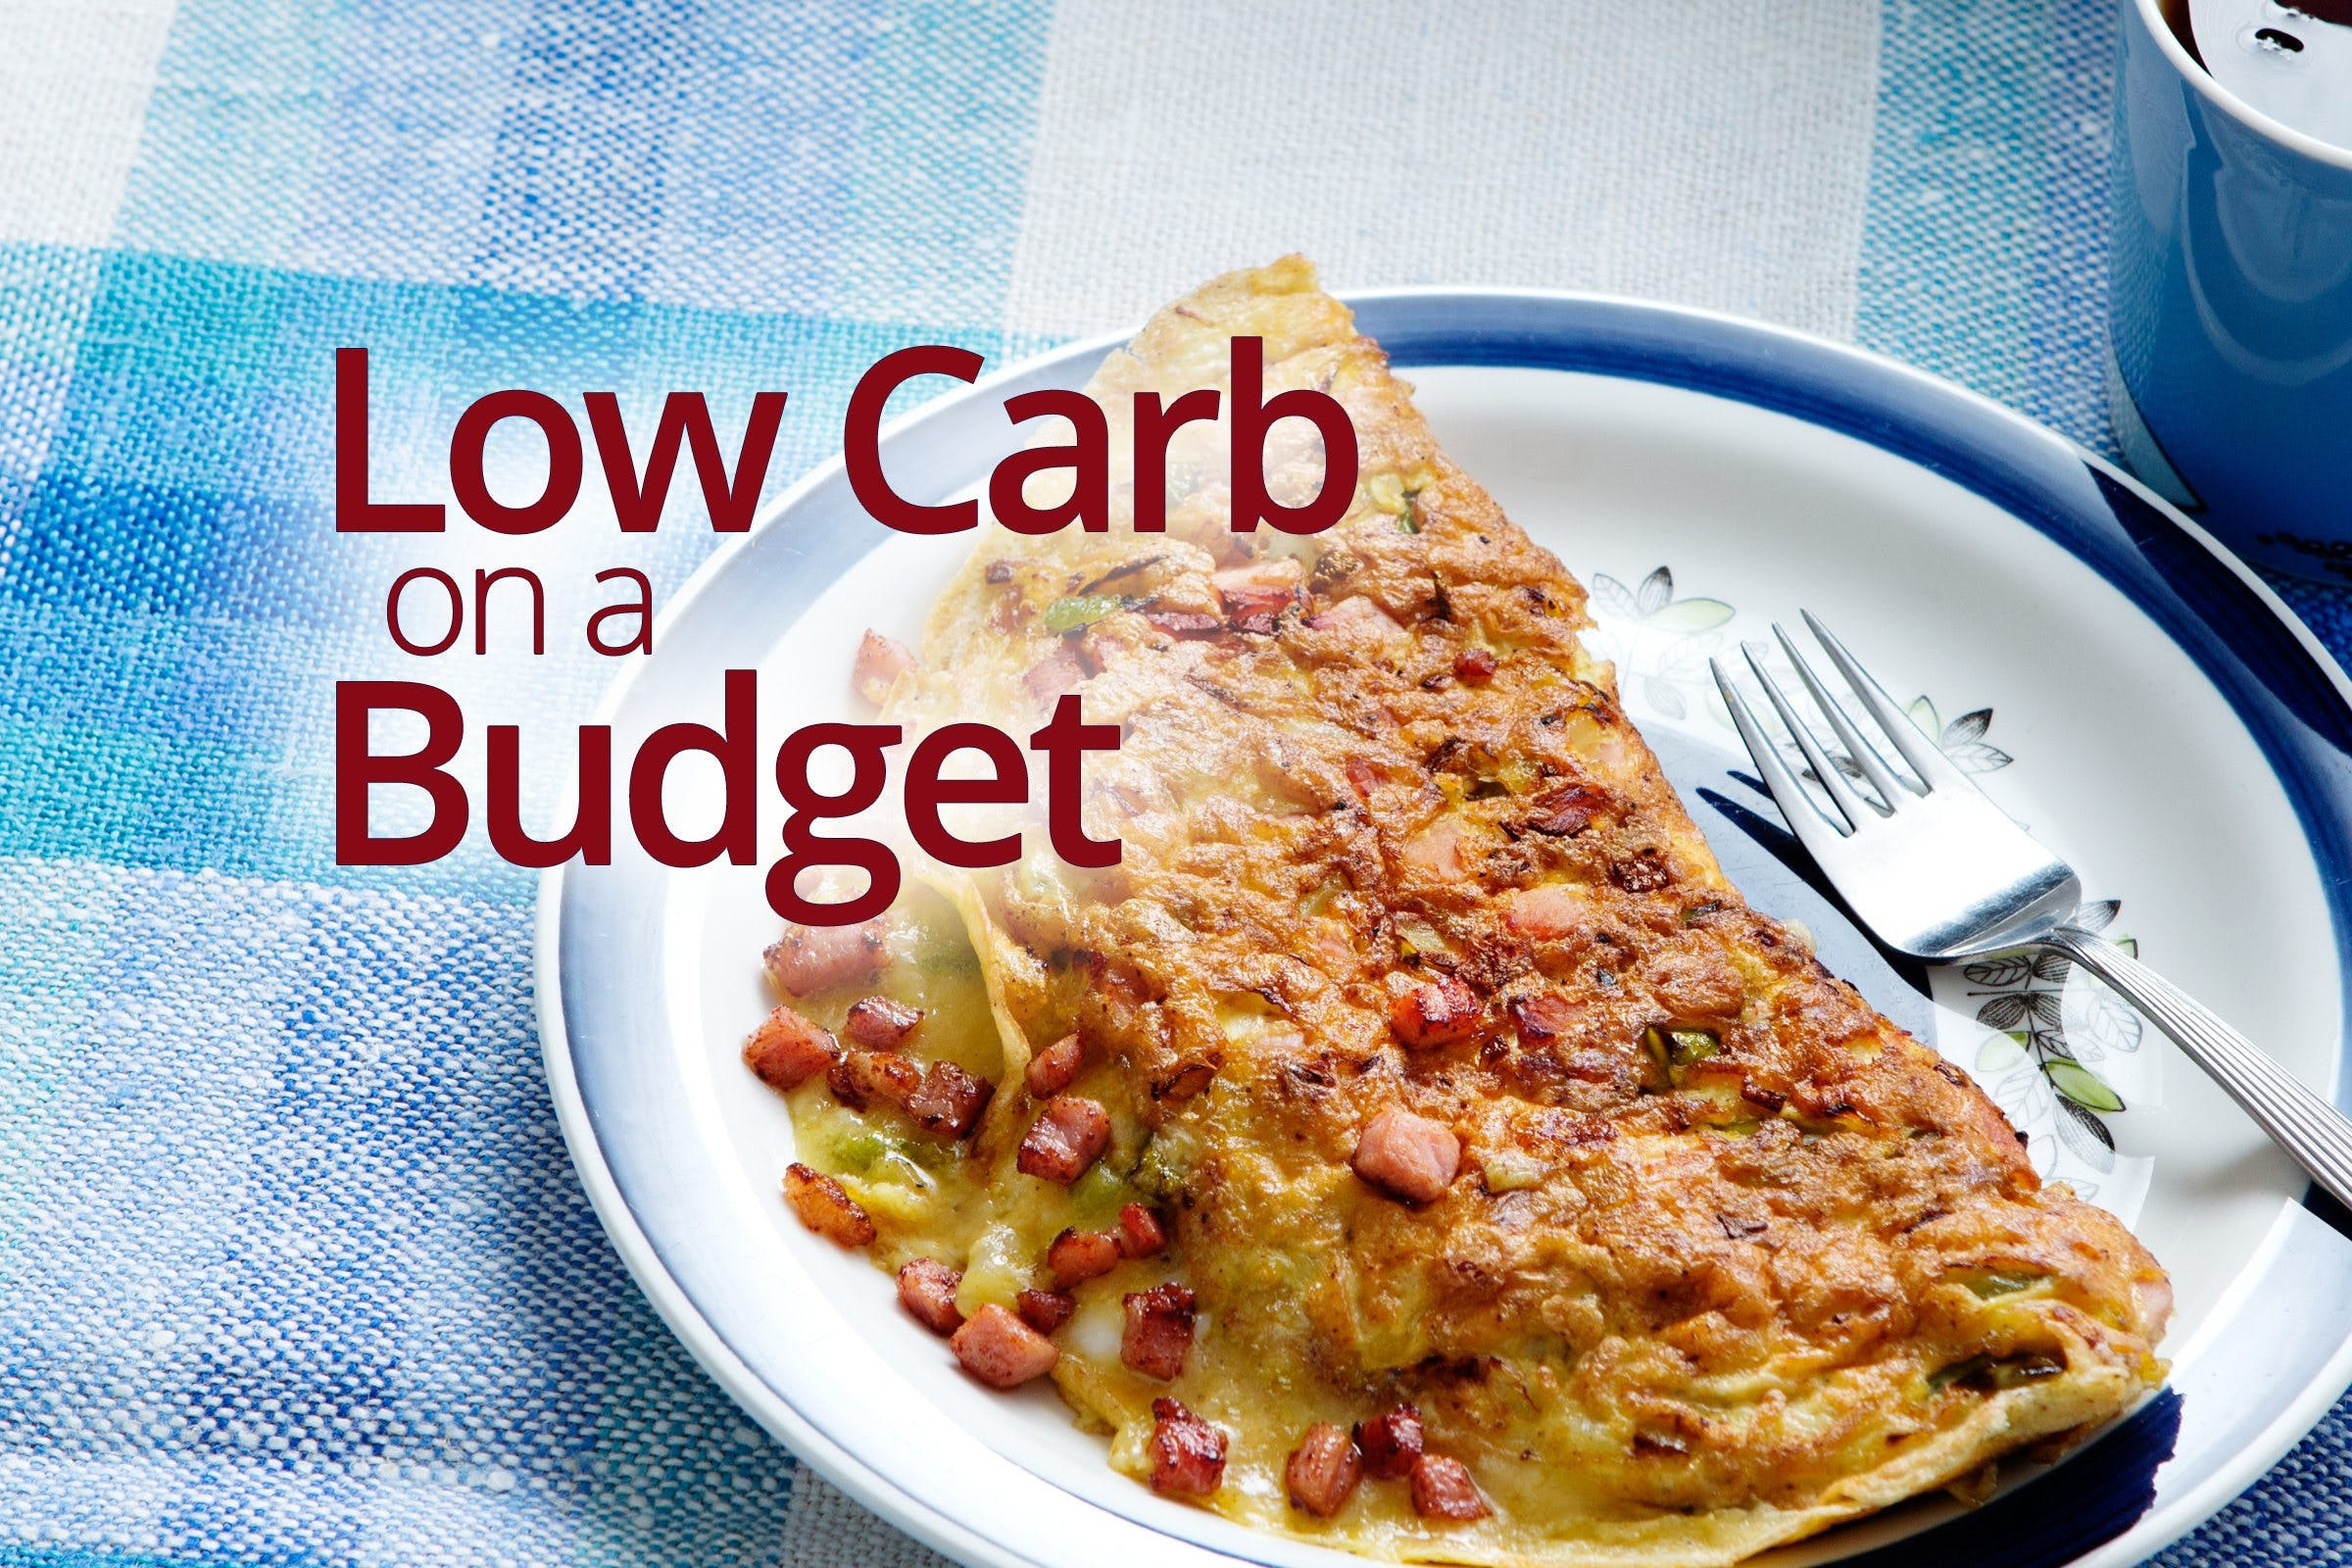 Cheap Low Carb Dinners  Low Carb and Keto on a Bud Money Saving Tips Diet